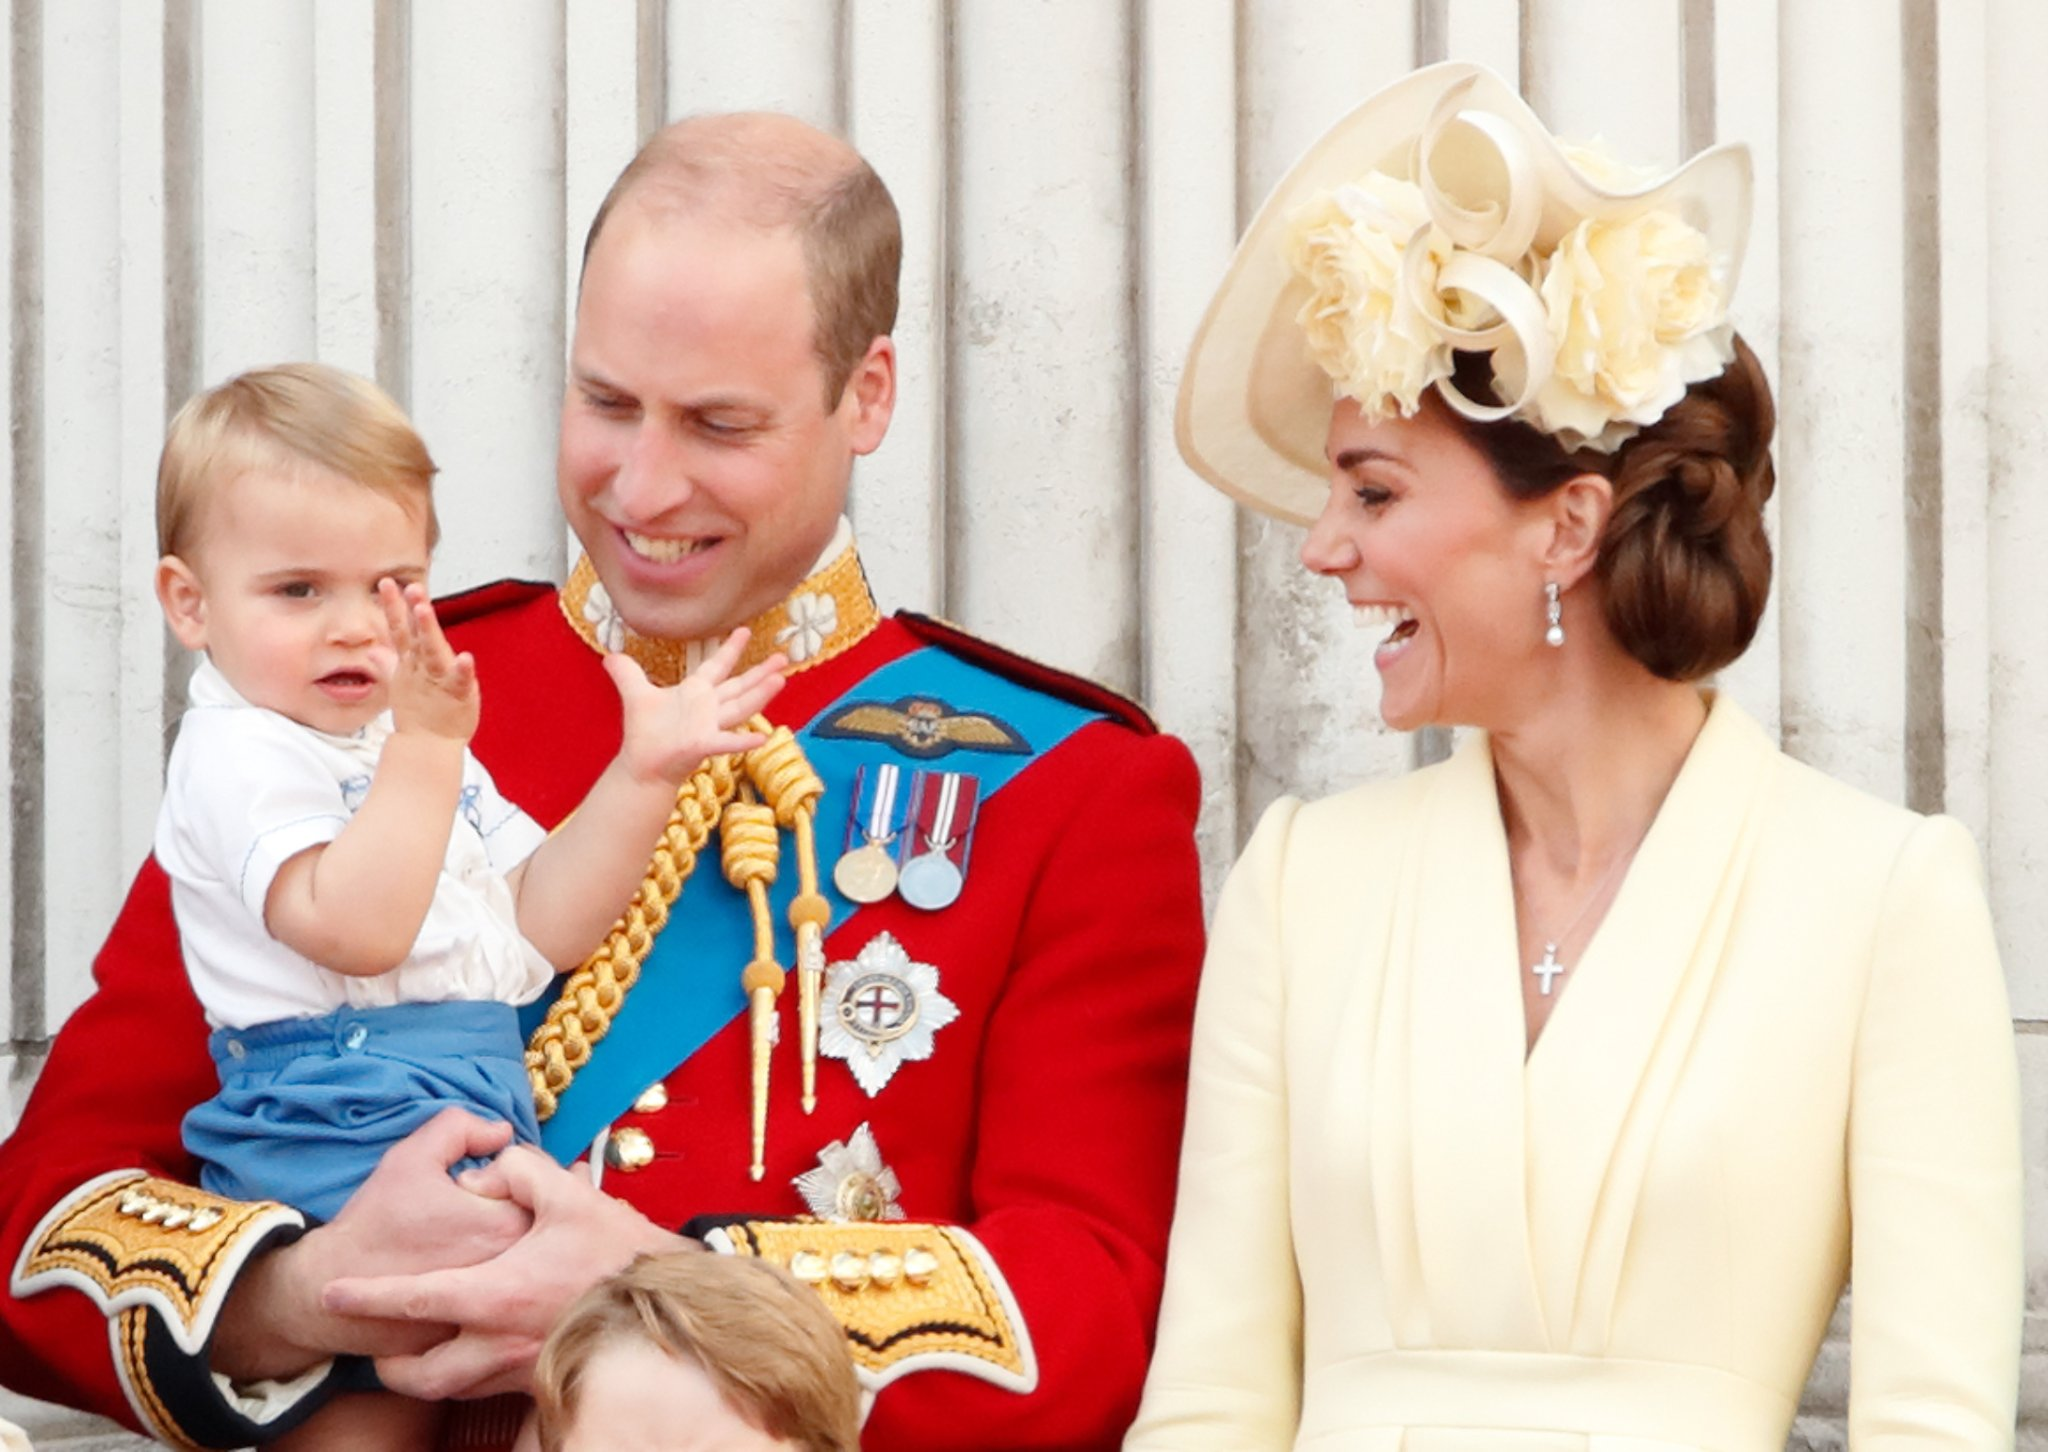 19 Times Prince William, Kate Middleton, and Their Kids Were the Picture-Perfect Family